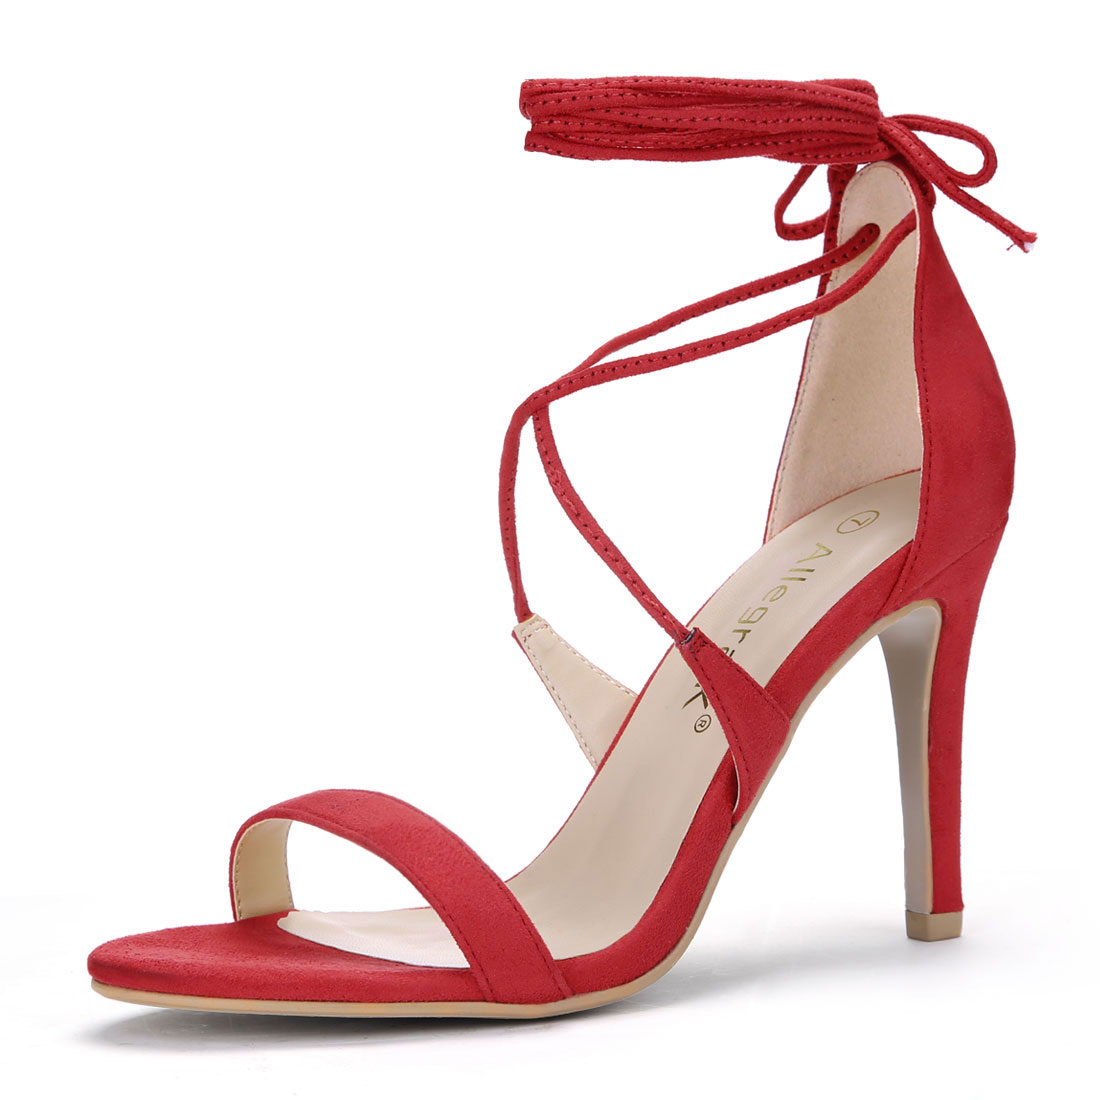 Women Open Toe Stiletto High Heel Lace-Up Sandals Red US 7